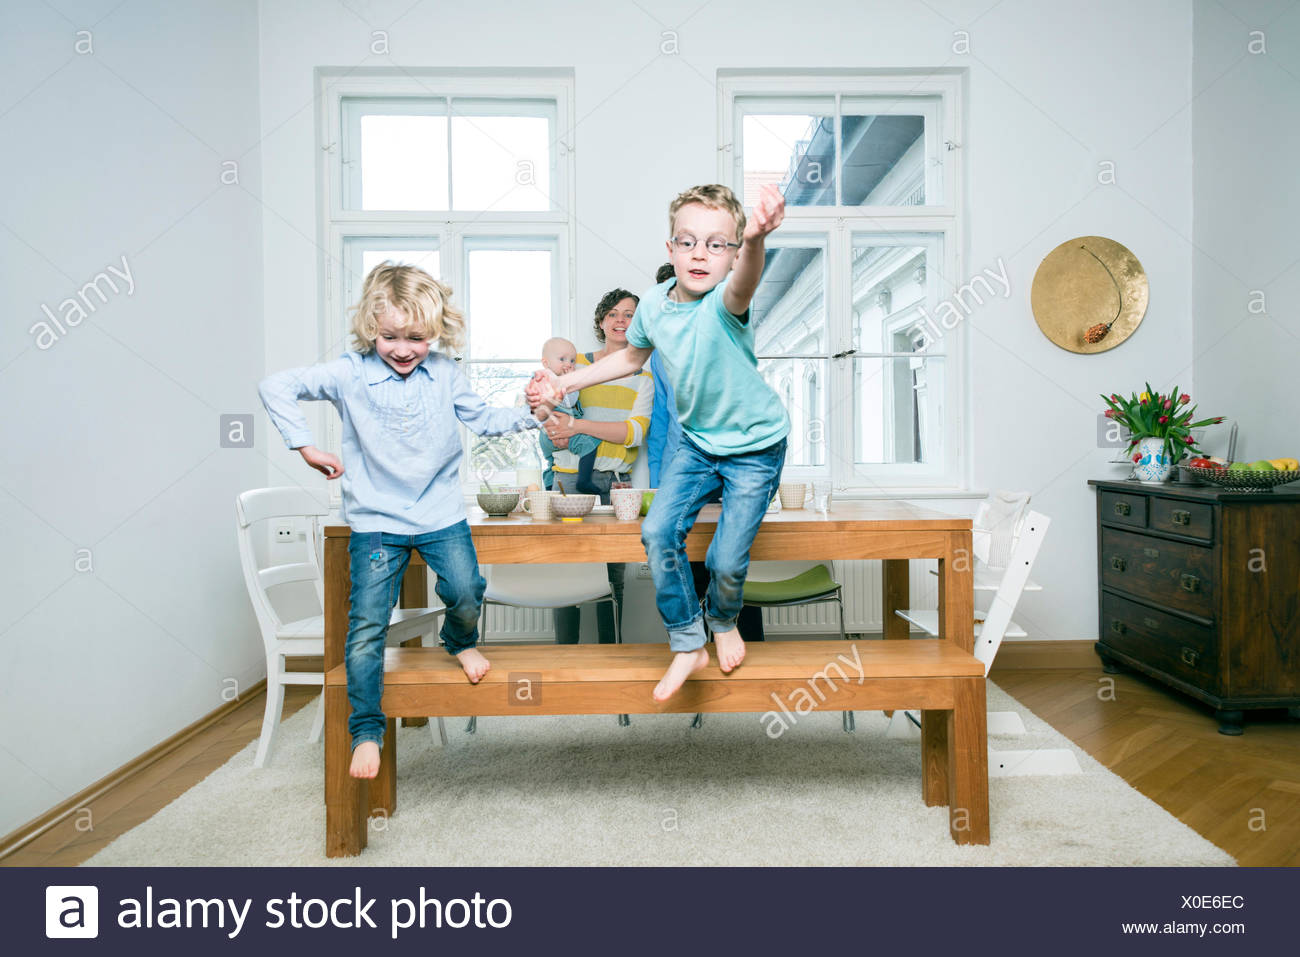 Family with three children in living room - Stock Image